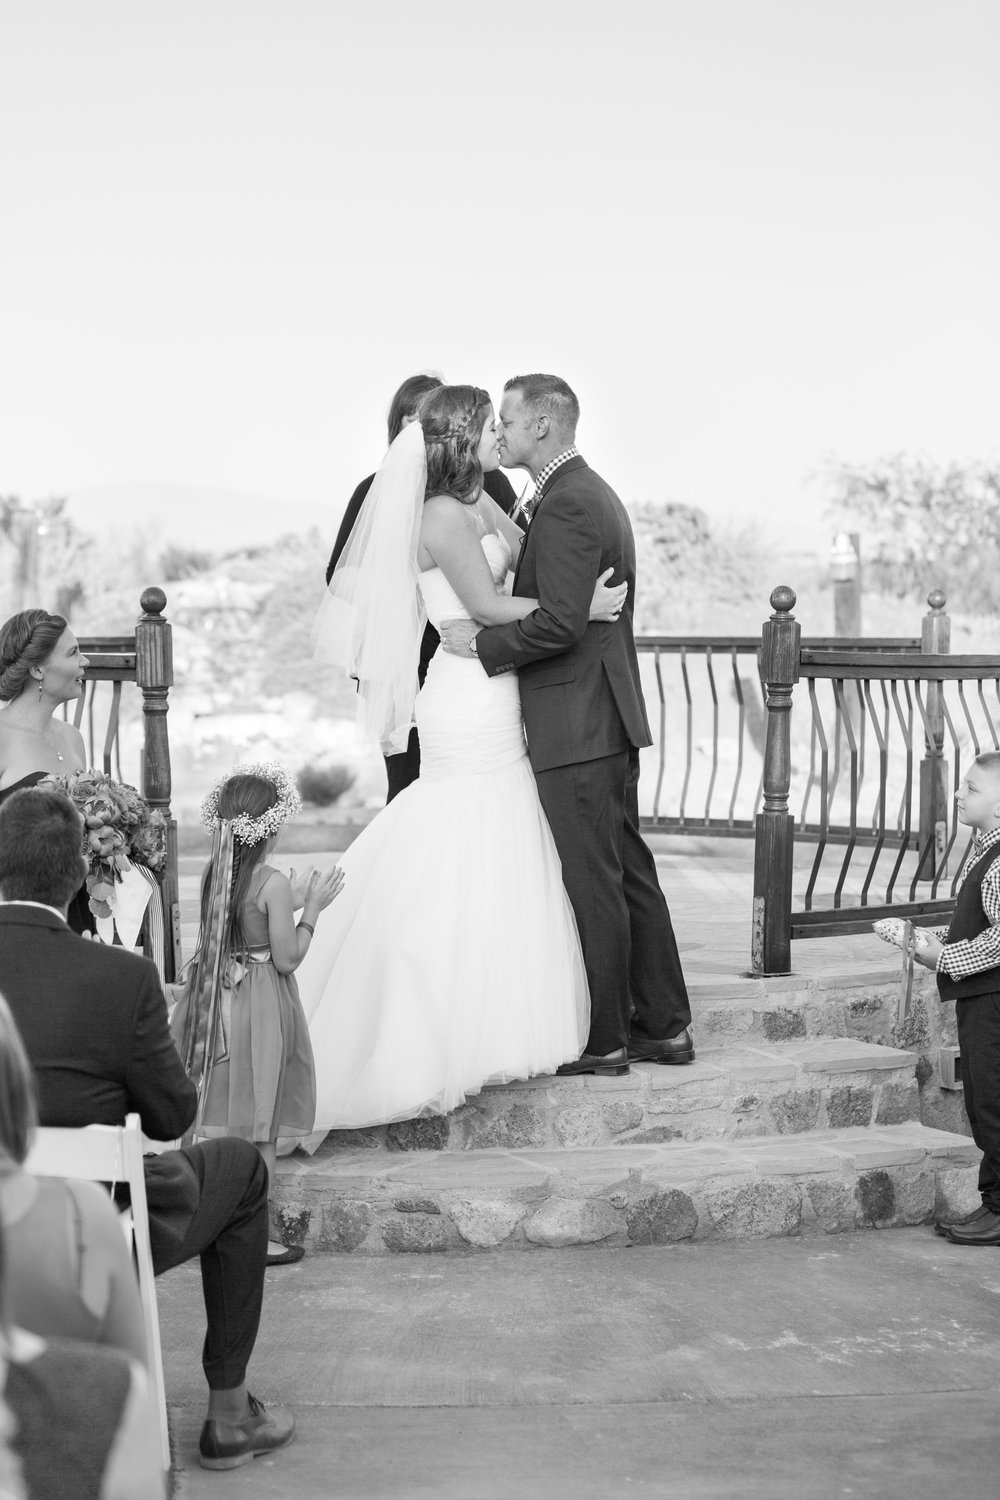 Sealed with a kiss. First kiss as husband and wife!